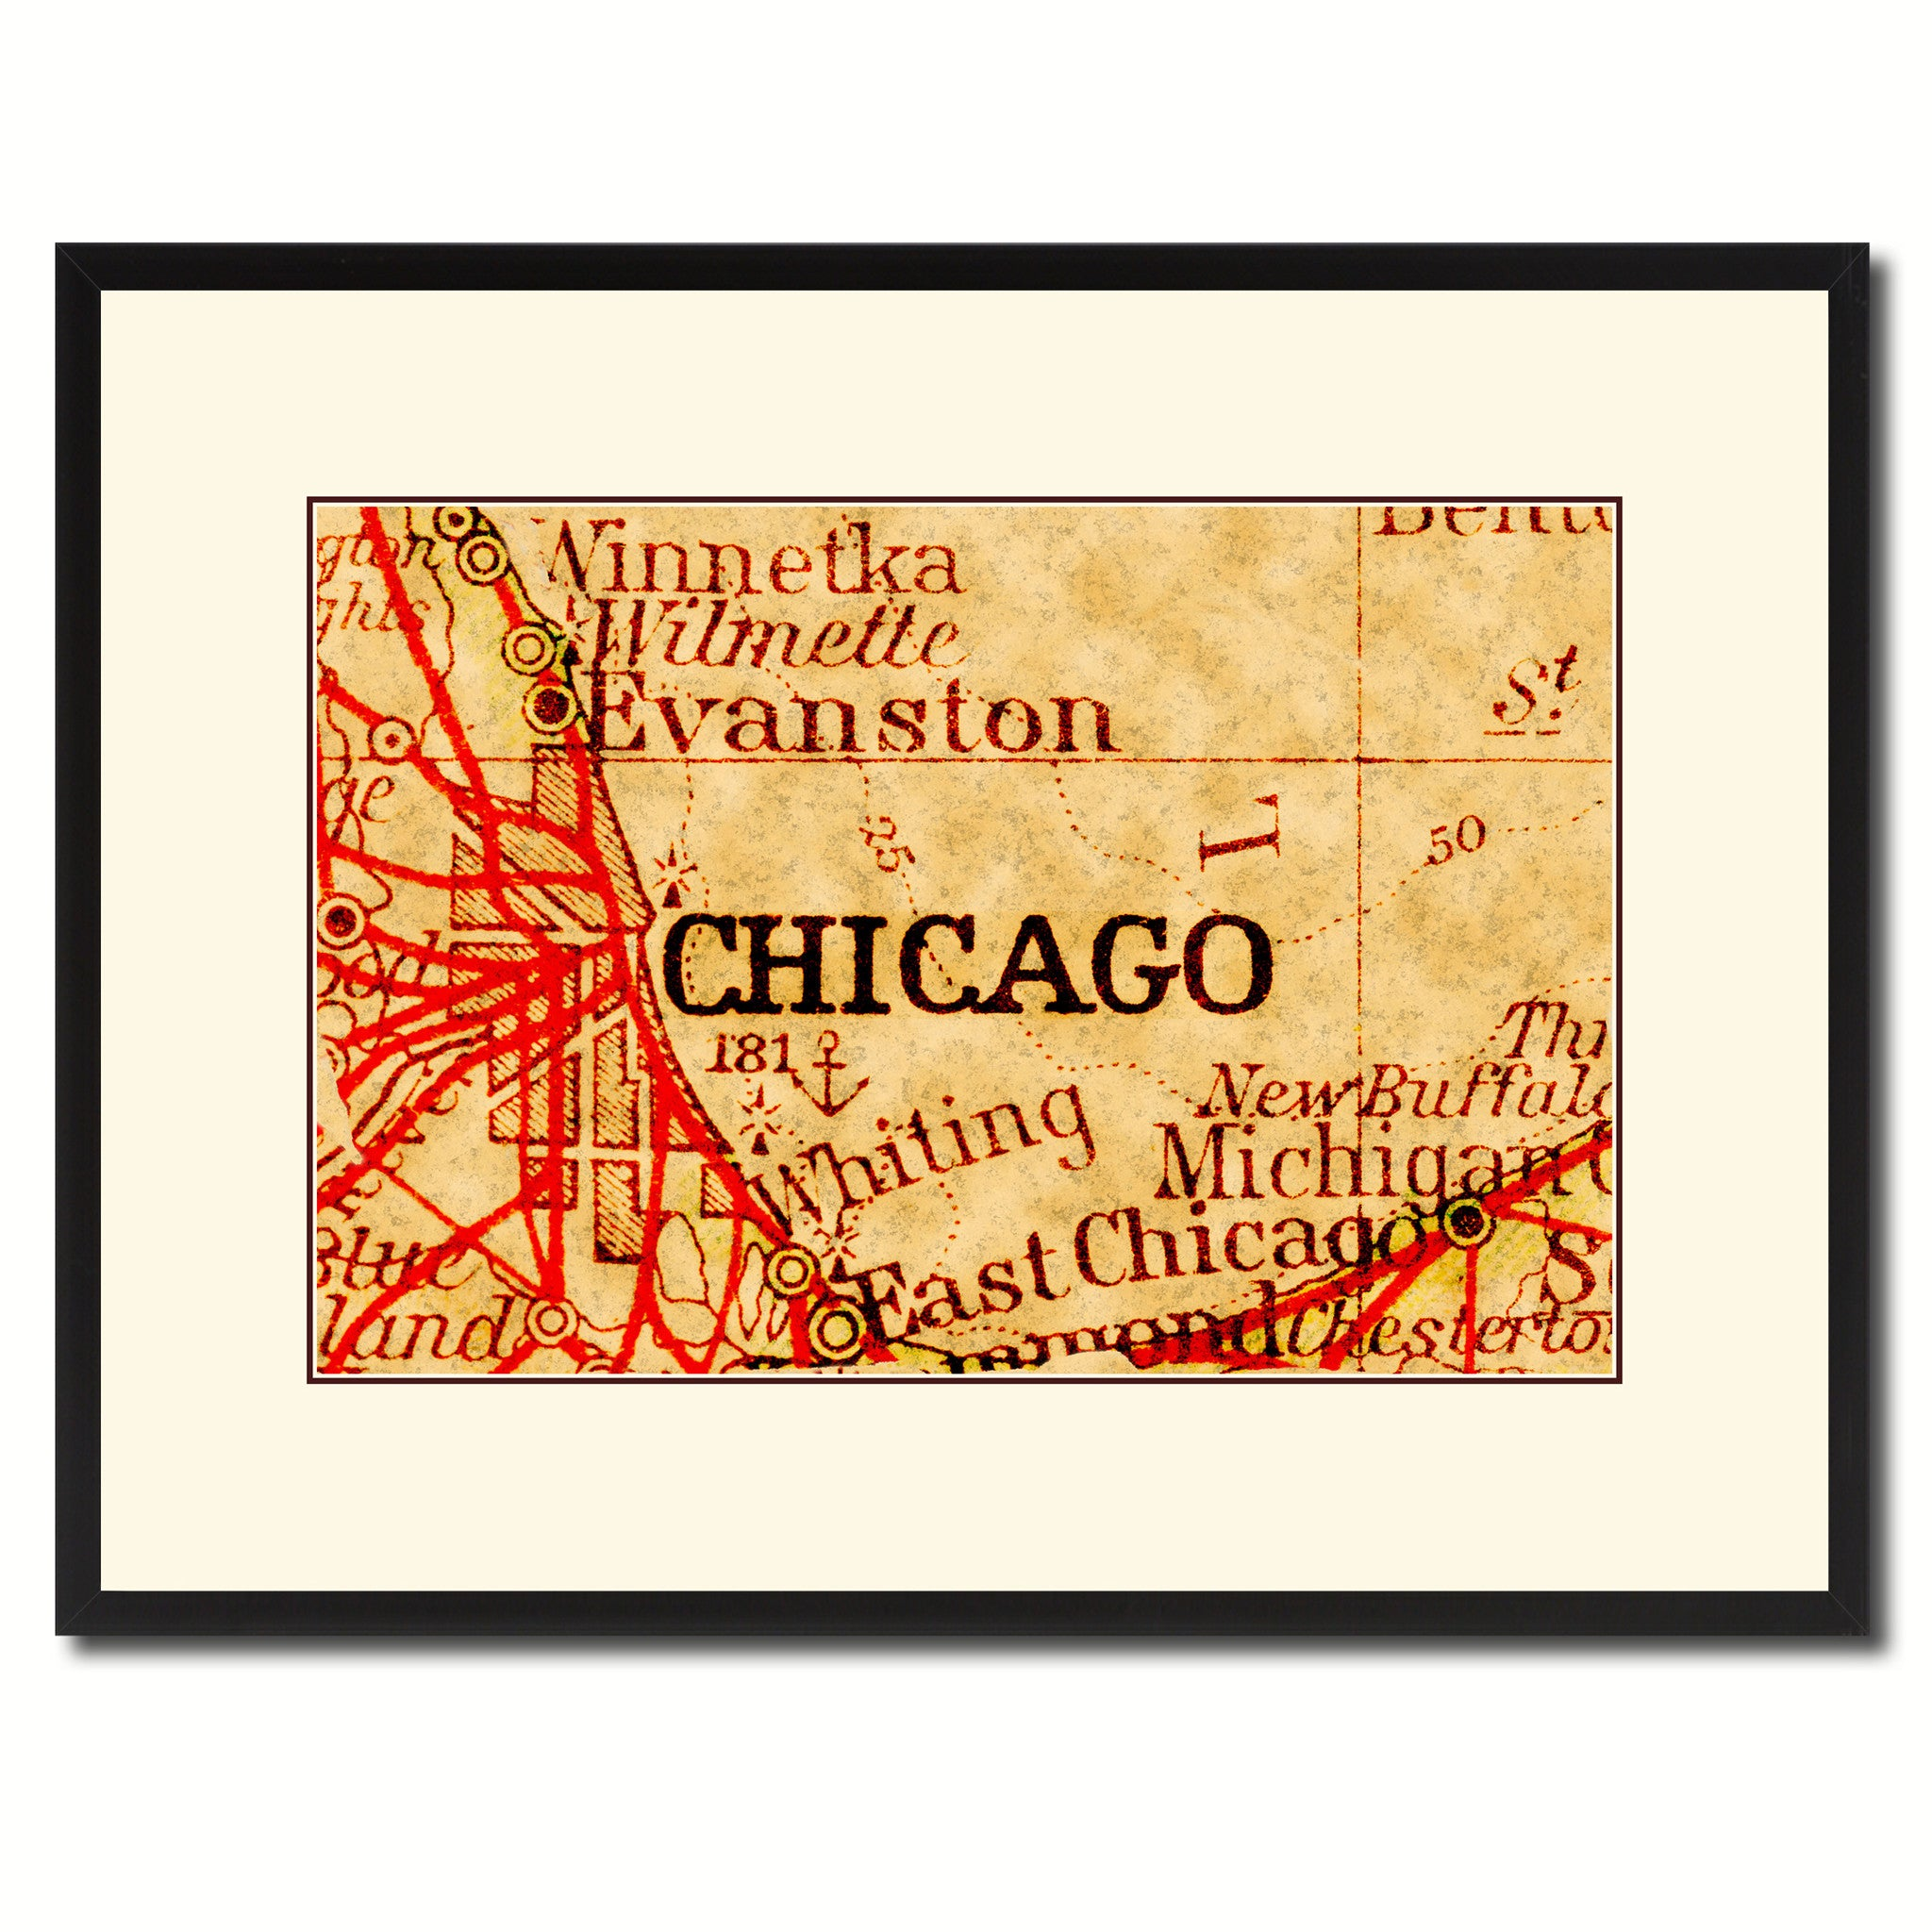 Chicago Illinois Vintage Antique Map Wall Art Home Decor Gift Ideas on chicago illinois map, chicago road map with numbers, chicago map vintage, chicago wall murals, chicago sculpture wall colors, chicago map wallpaper, chicago street block numbers, chicago neighborhood map, chicago state map, chicago map fabric, chicago map glass, chicago map design, chicago map canvas, chicago skyline 2014, chicago wall decor, chicago black, chicago street map, chicago metro map, chicago map artwork, chicago map coasters,